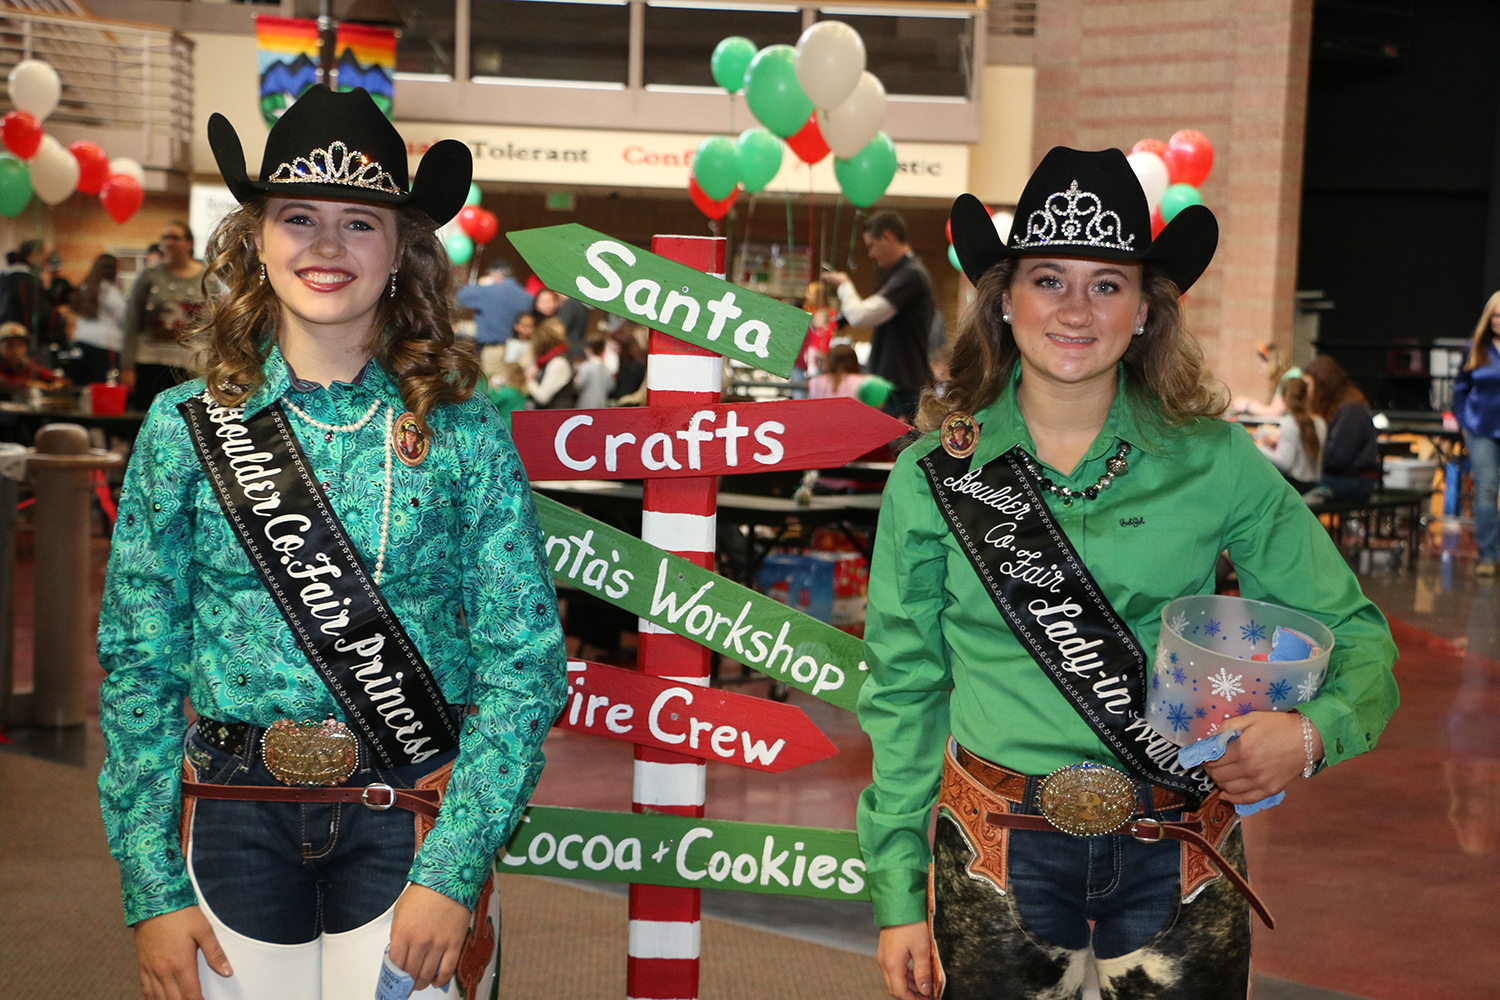 Rodeo queens at festival